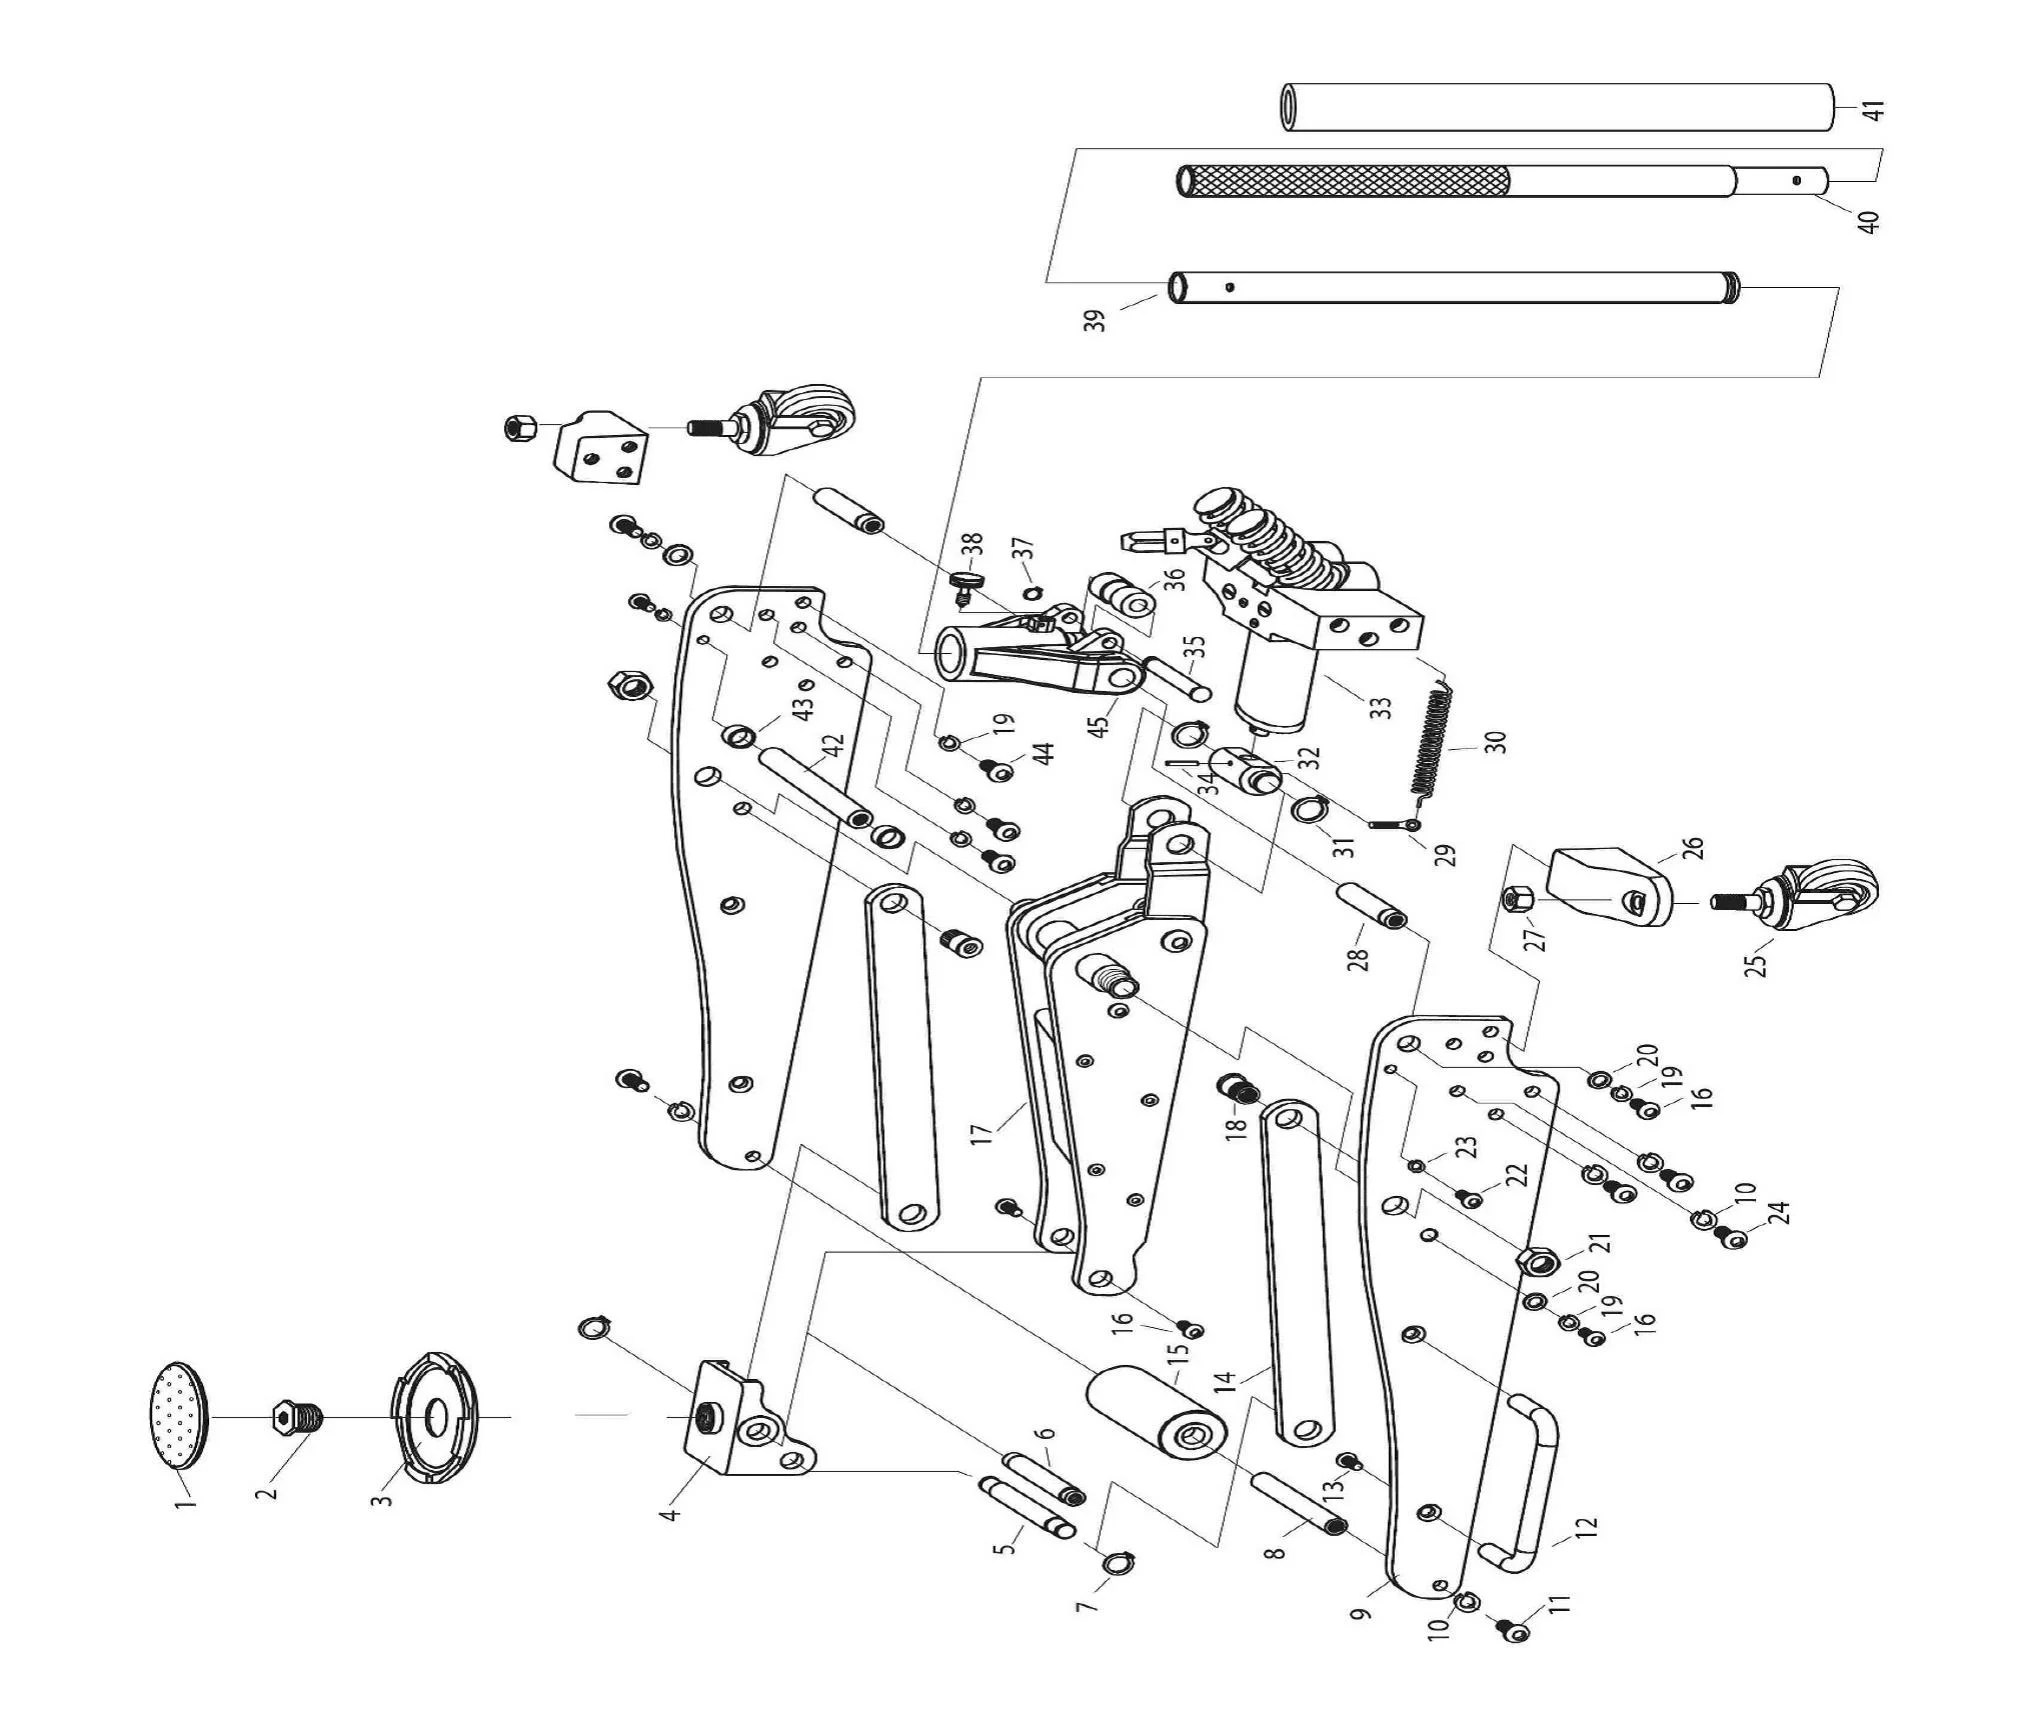 SIP 03673 1.25 Ton Aluminium Racing Jack Diagram